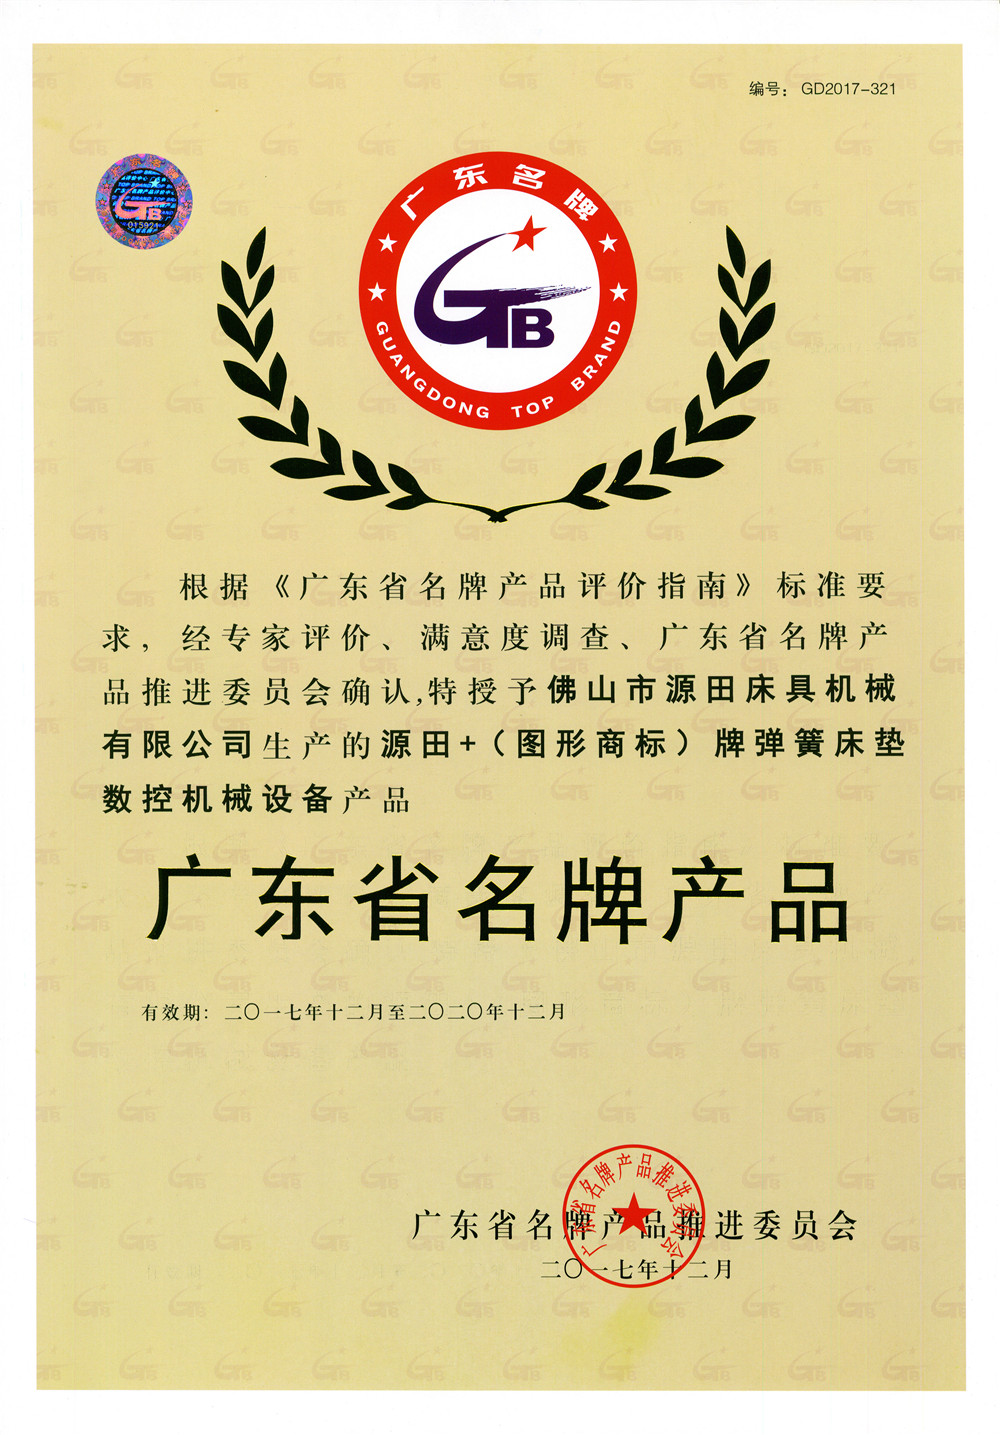 2017 Guangdong Famous Brand Certificate